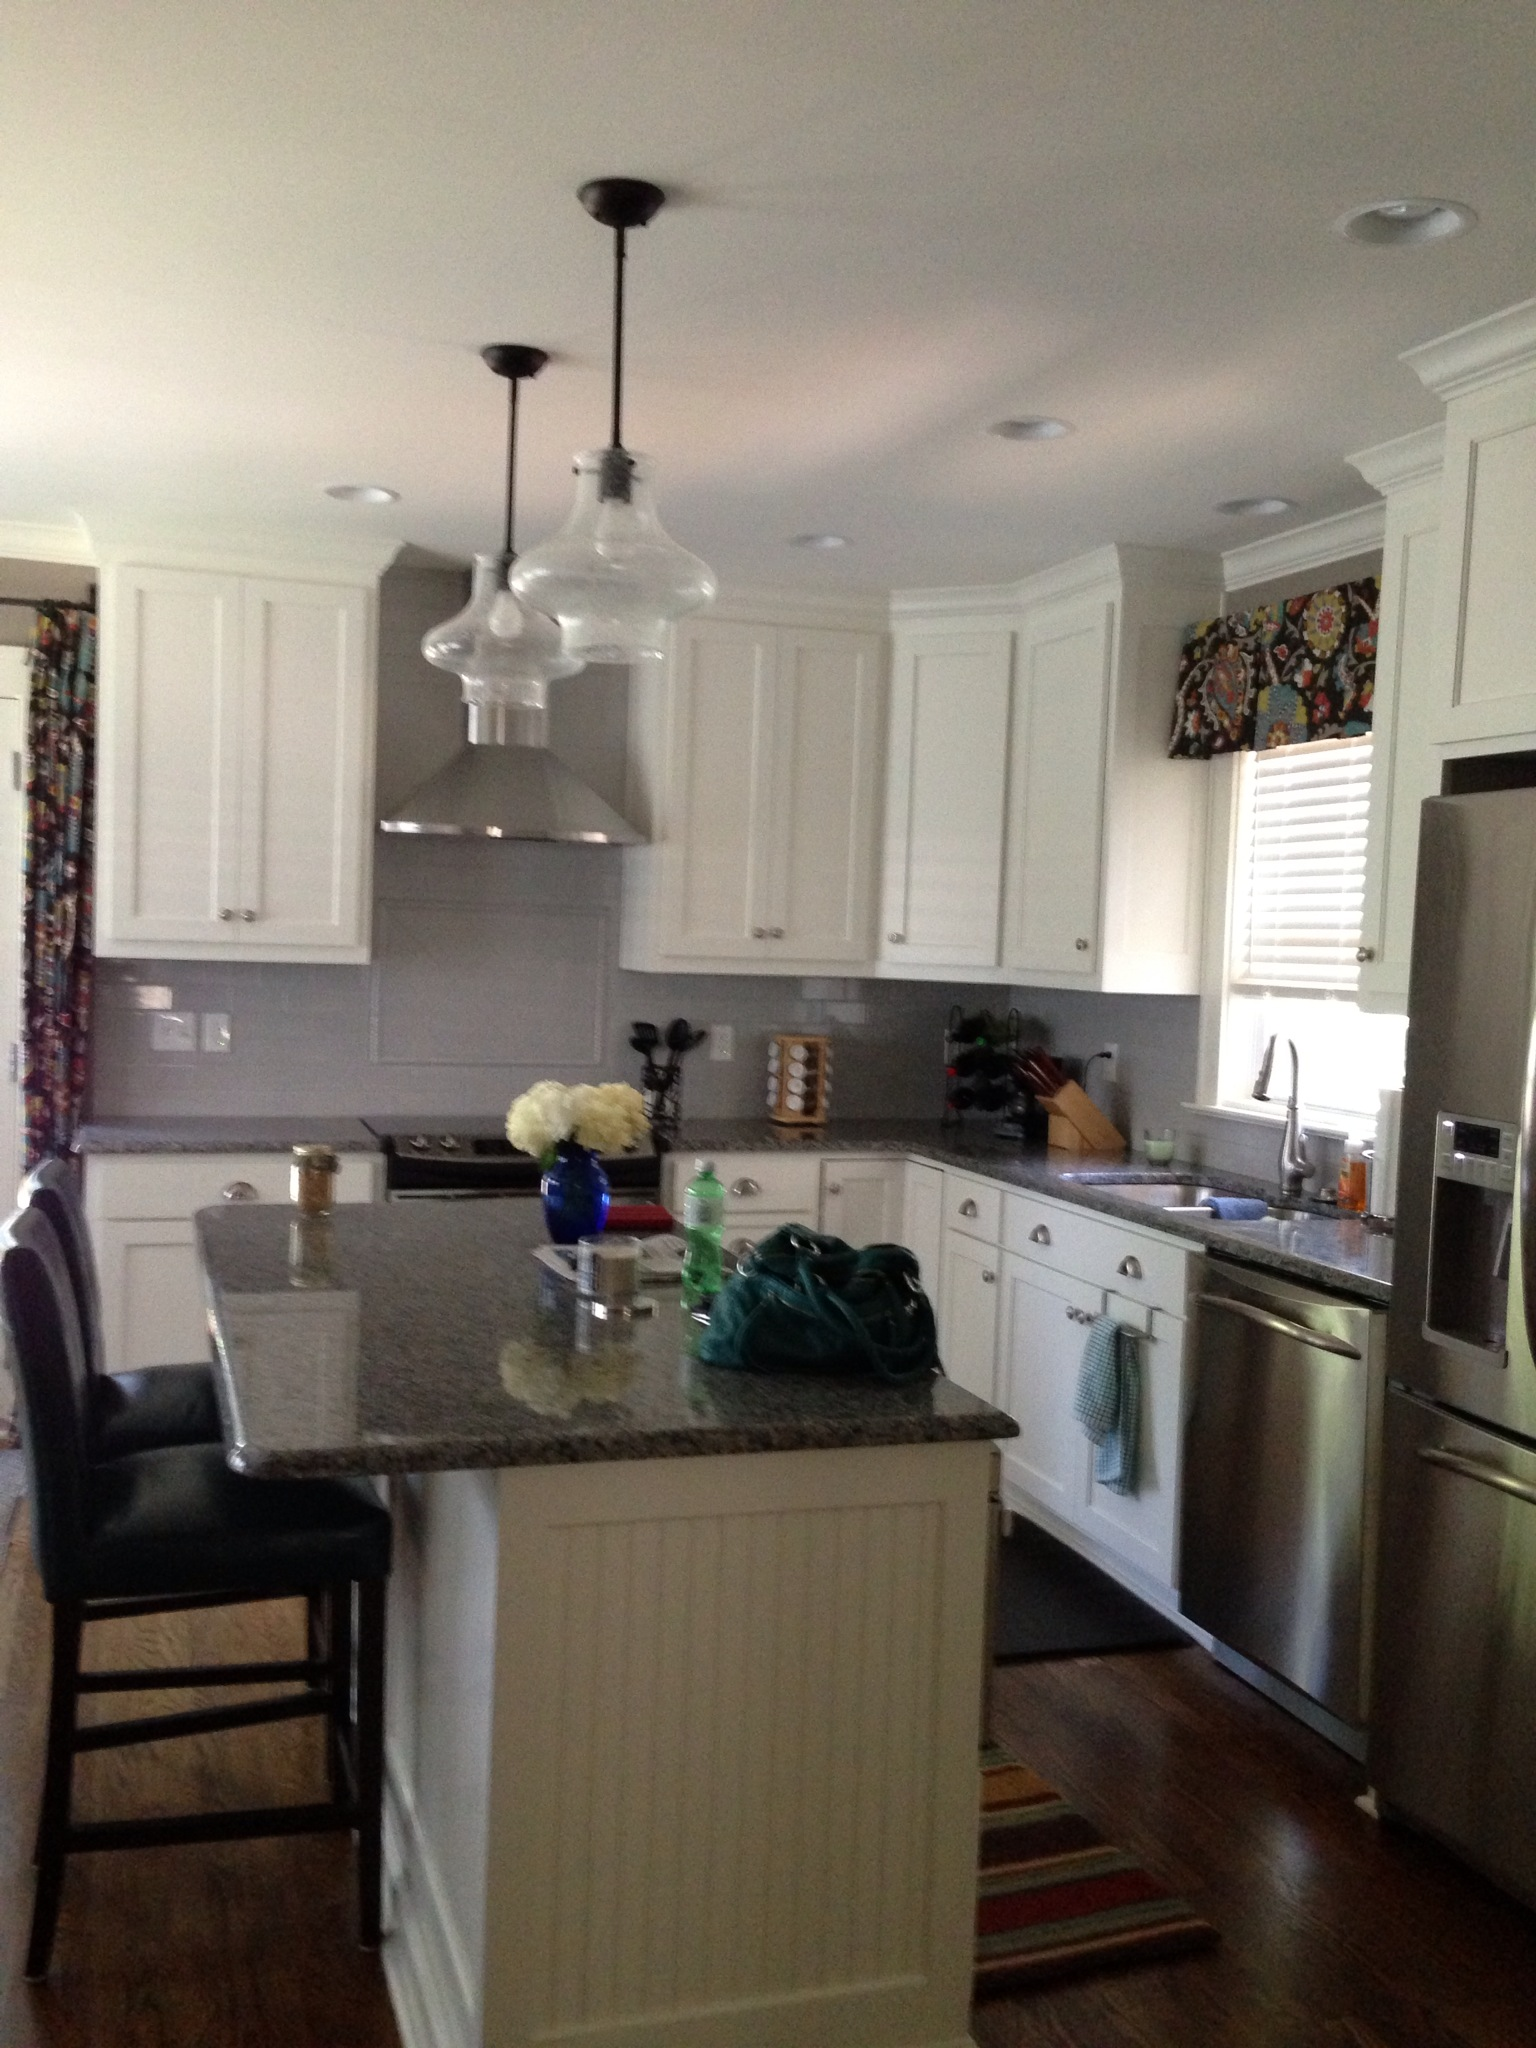 NORTHLAND KITCHEN REMODEL